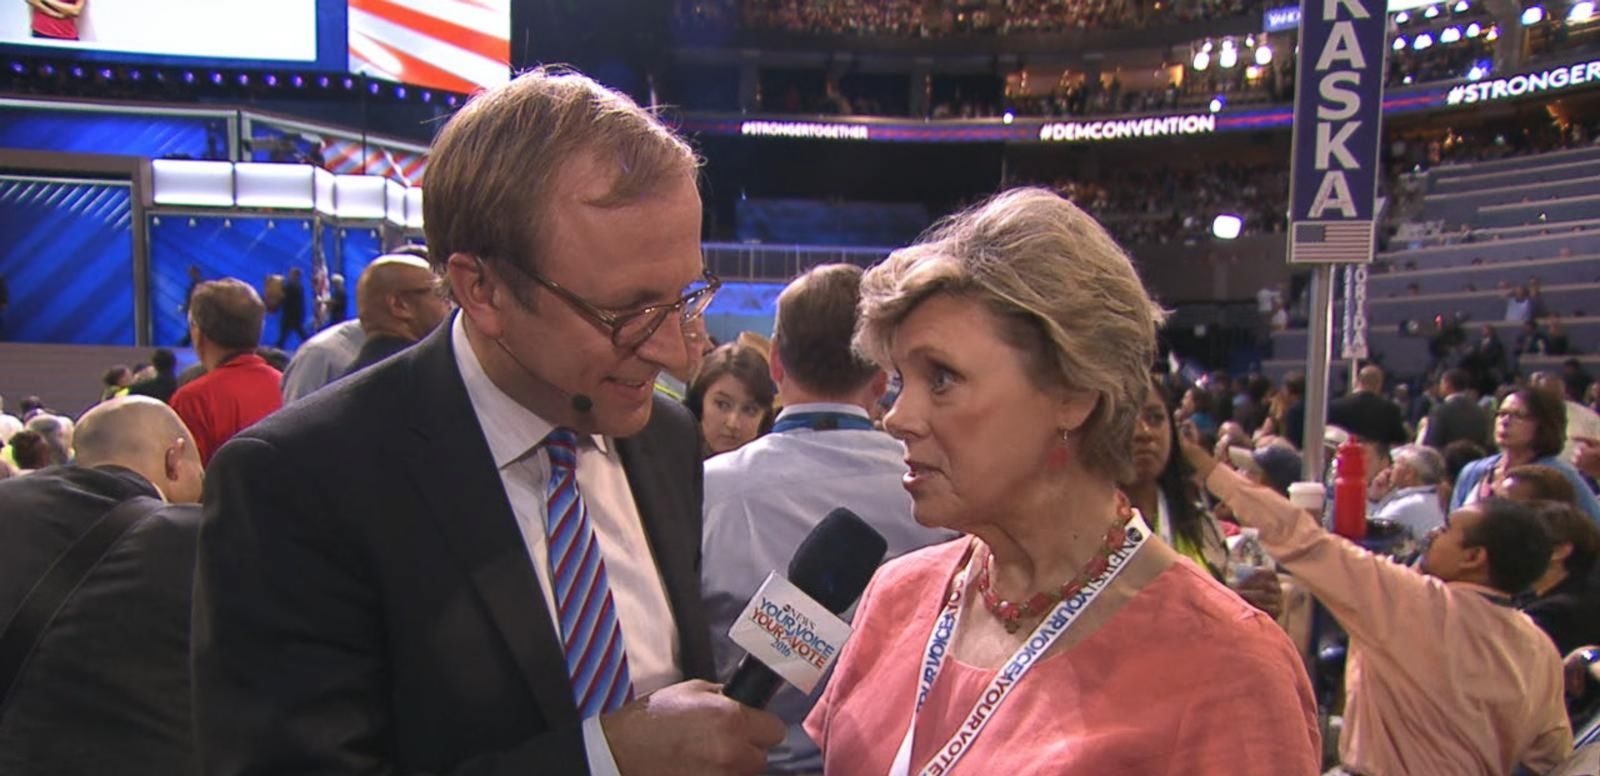 VIDEO: Cokie Roberts on the Significance of the 2016 Democratic National Convention